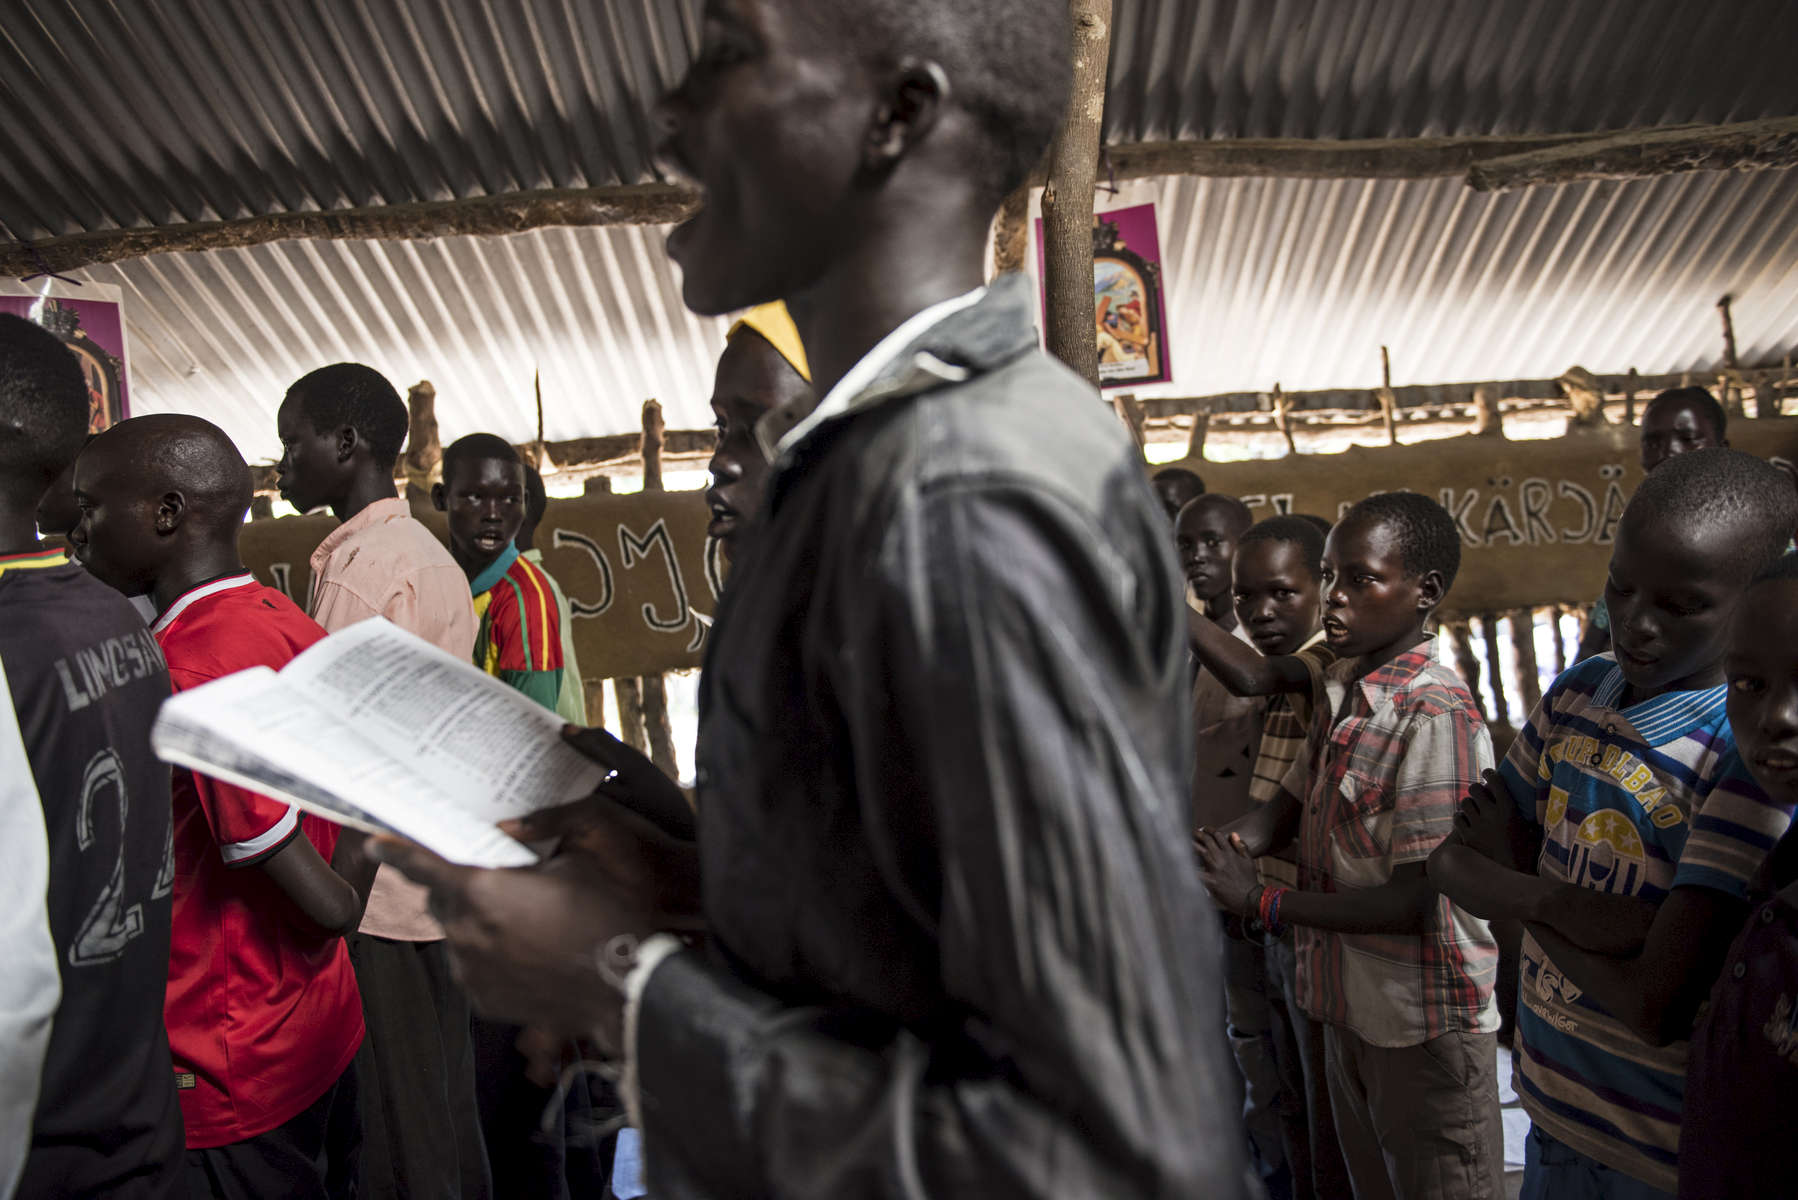 Chuol, 9, from southern Unity State, attends a Catholic mass on a Sunday alongside other internally displaced in Unity State, South Sudan, September 11, 2015.   Chuol was chased out of his own village with his grandmother and sister several months ago when it  was attacked, and his father and grandfather were burned alive. He, his grandmother, and sister fled to this area, where they are living on the ground of a host family. in South Sudan, September 11, 2015. Thousands of civilians have been killed, and others displaced since fighting between those loyal to President Salva Kiir and those loyal to opposition leader Riek Marchar began again in 2013.